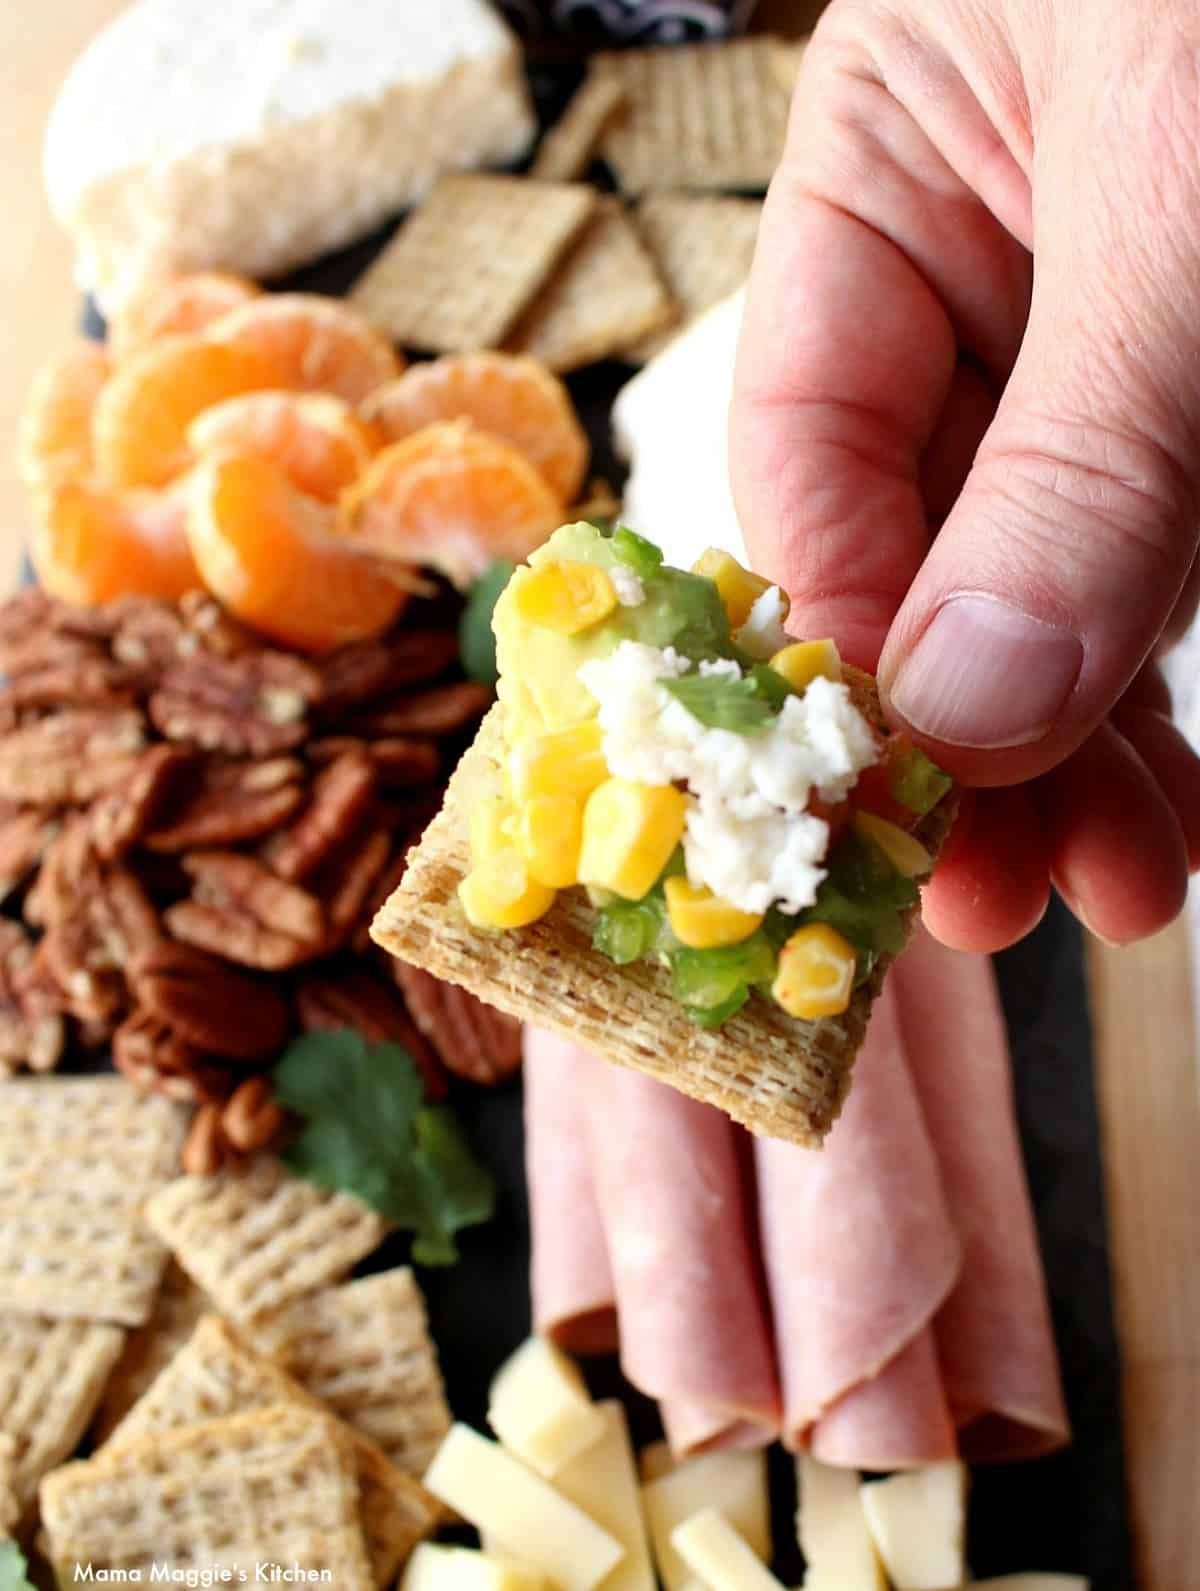 Hand holding a Triscuit with corn salsa.